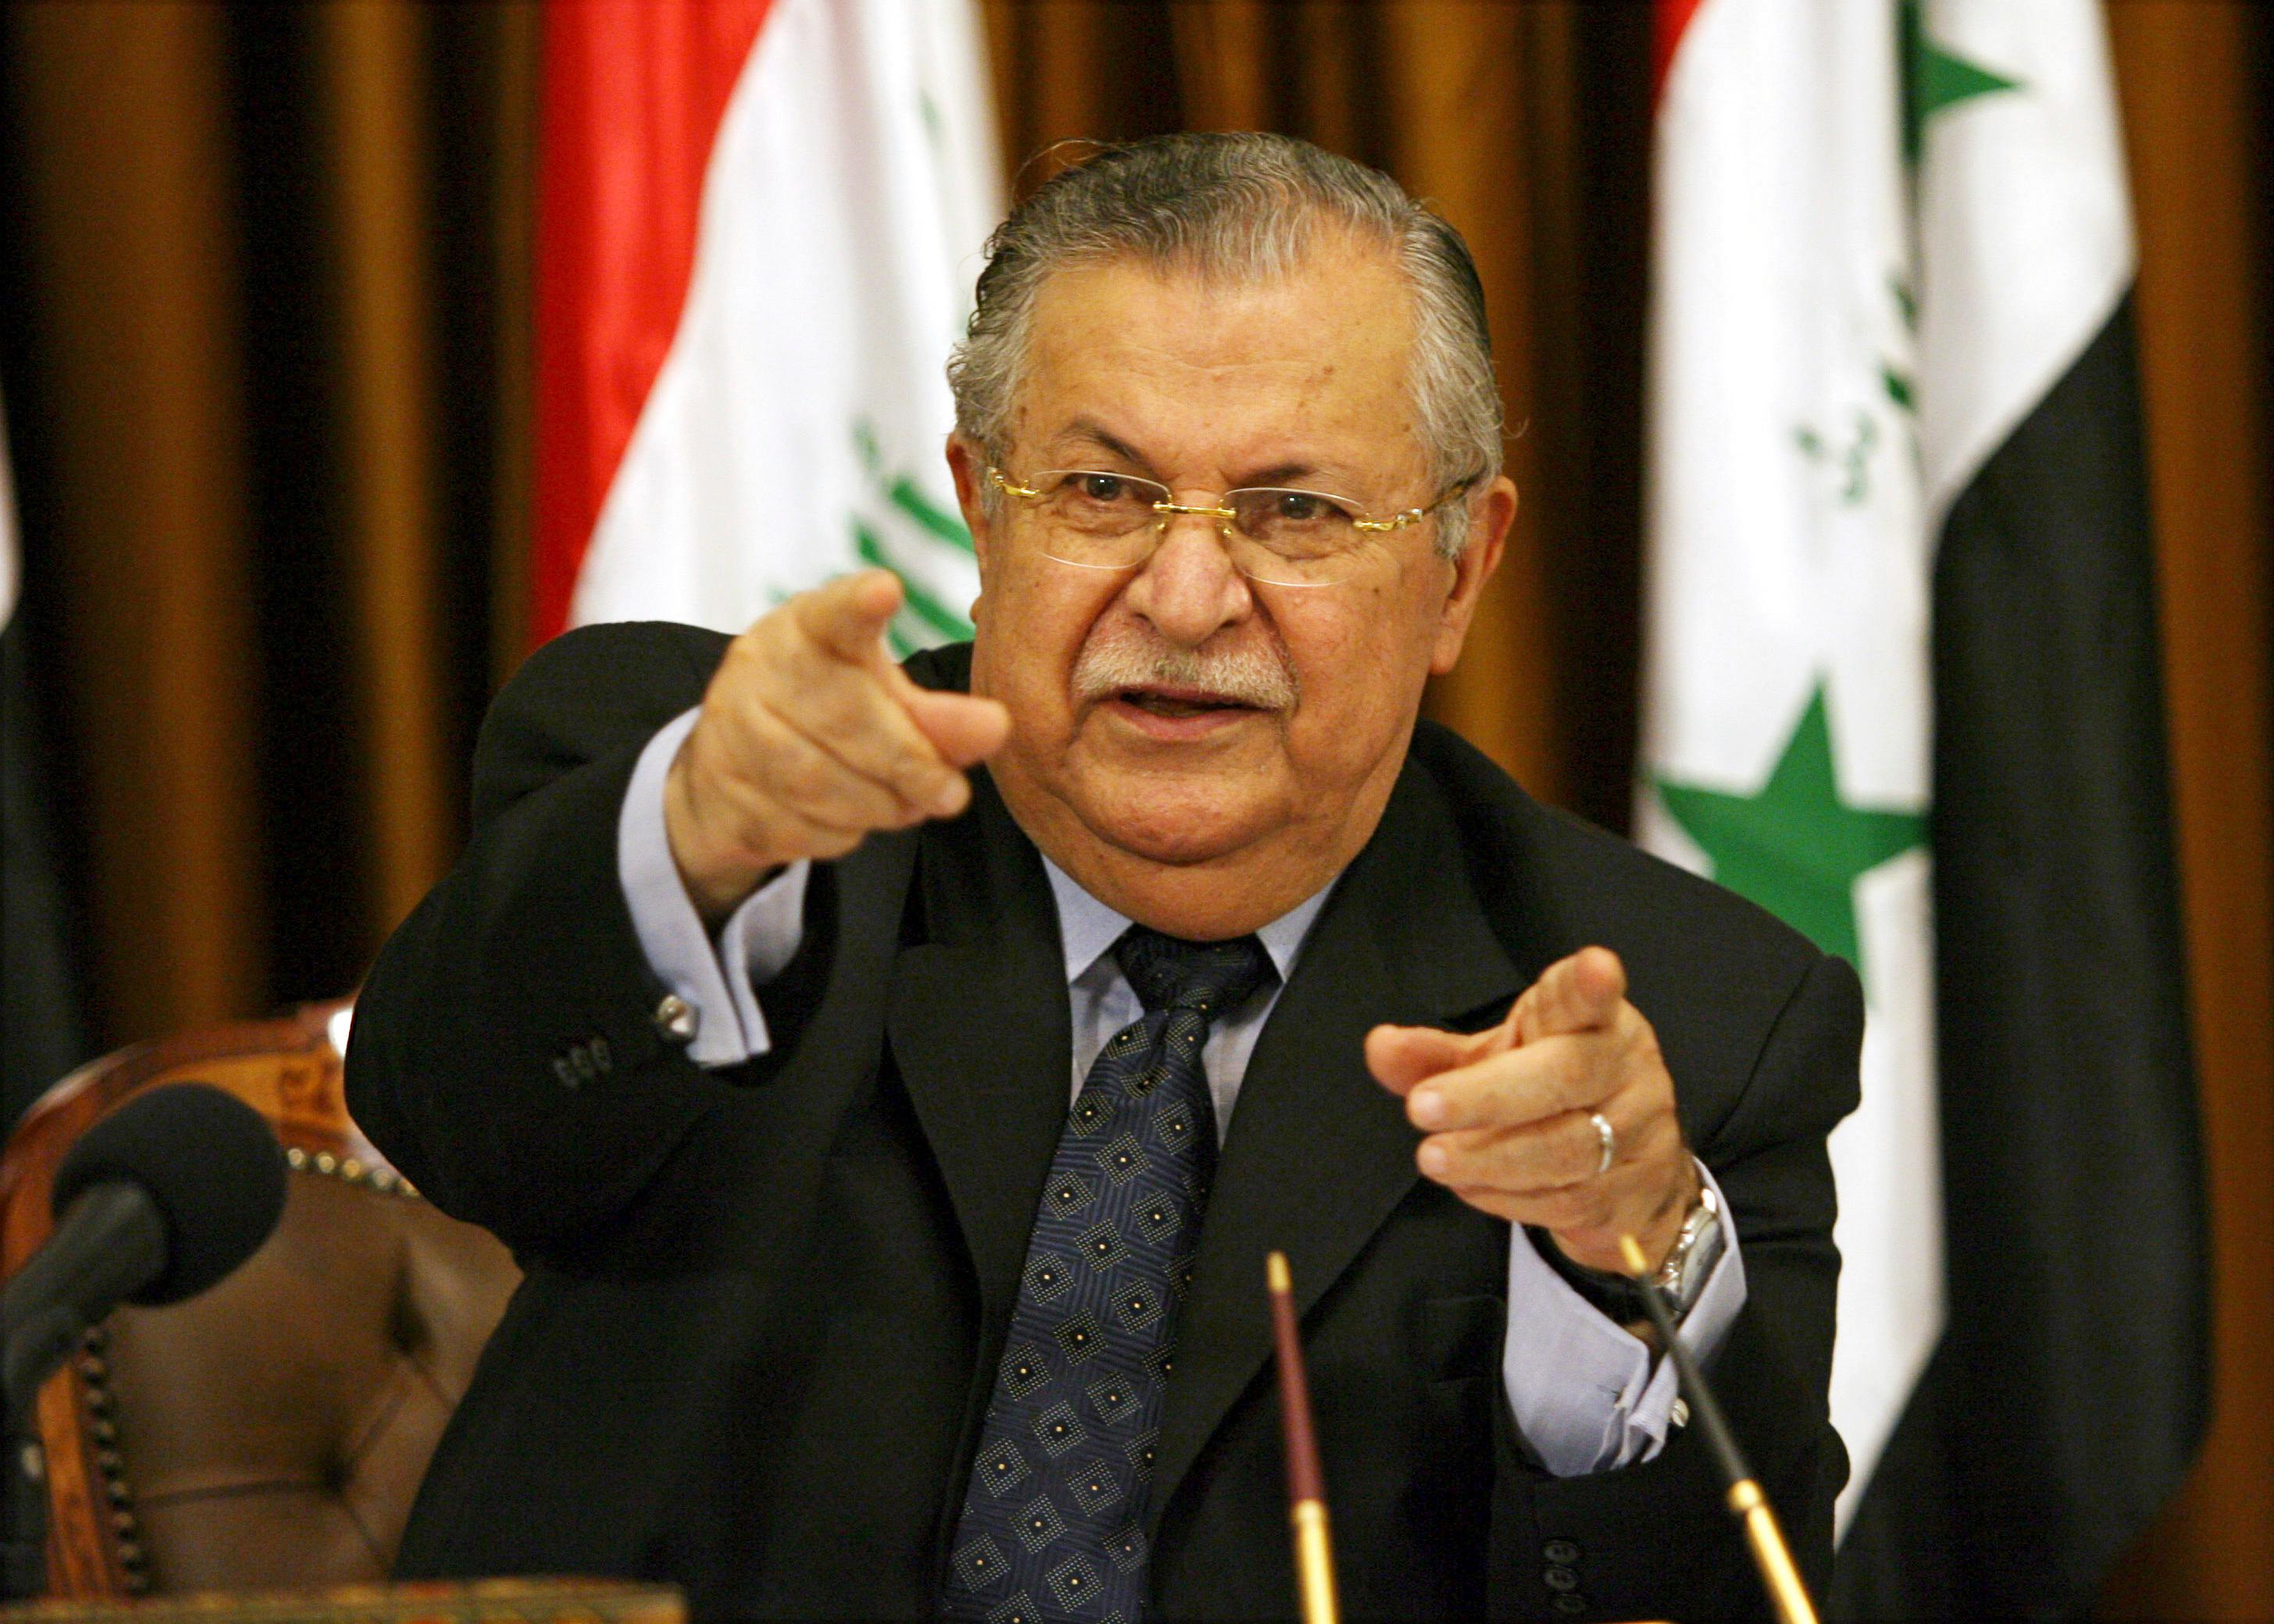 FILE - In this Aug. 17, 2007 file photo, then Iraqi President Jalal Talabani talks to reporters in Baghdad, Iraq. Talabani, a lifelong fighter for Iraq's Kurds who rose to become the country's president, presenting himself as a unifying father figure to temper the potentially explosive hatreds among Kurds, Shiites and Sunnis has died in a Berlin hospital at the age of 83. (AP Photo/ Hadi Mizban, File)